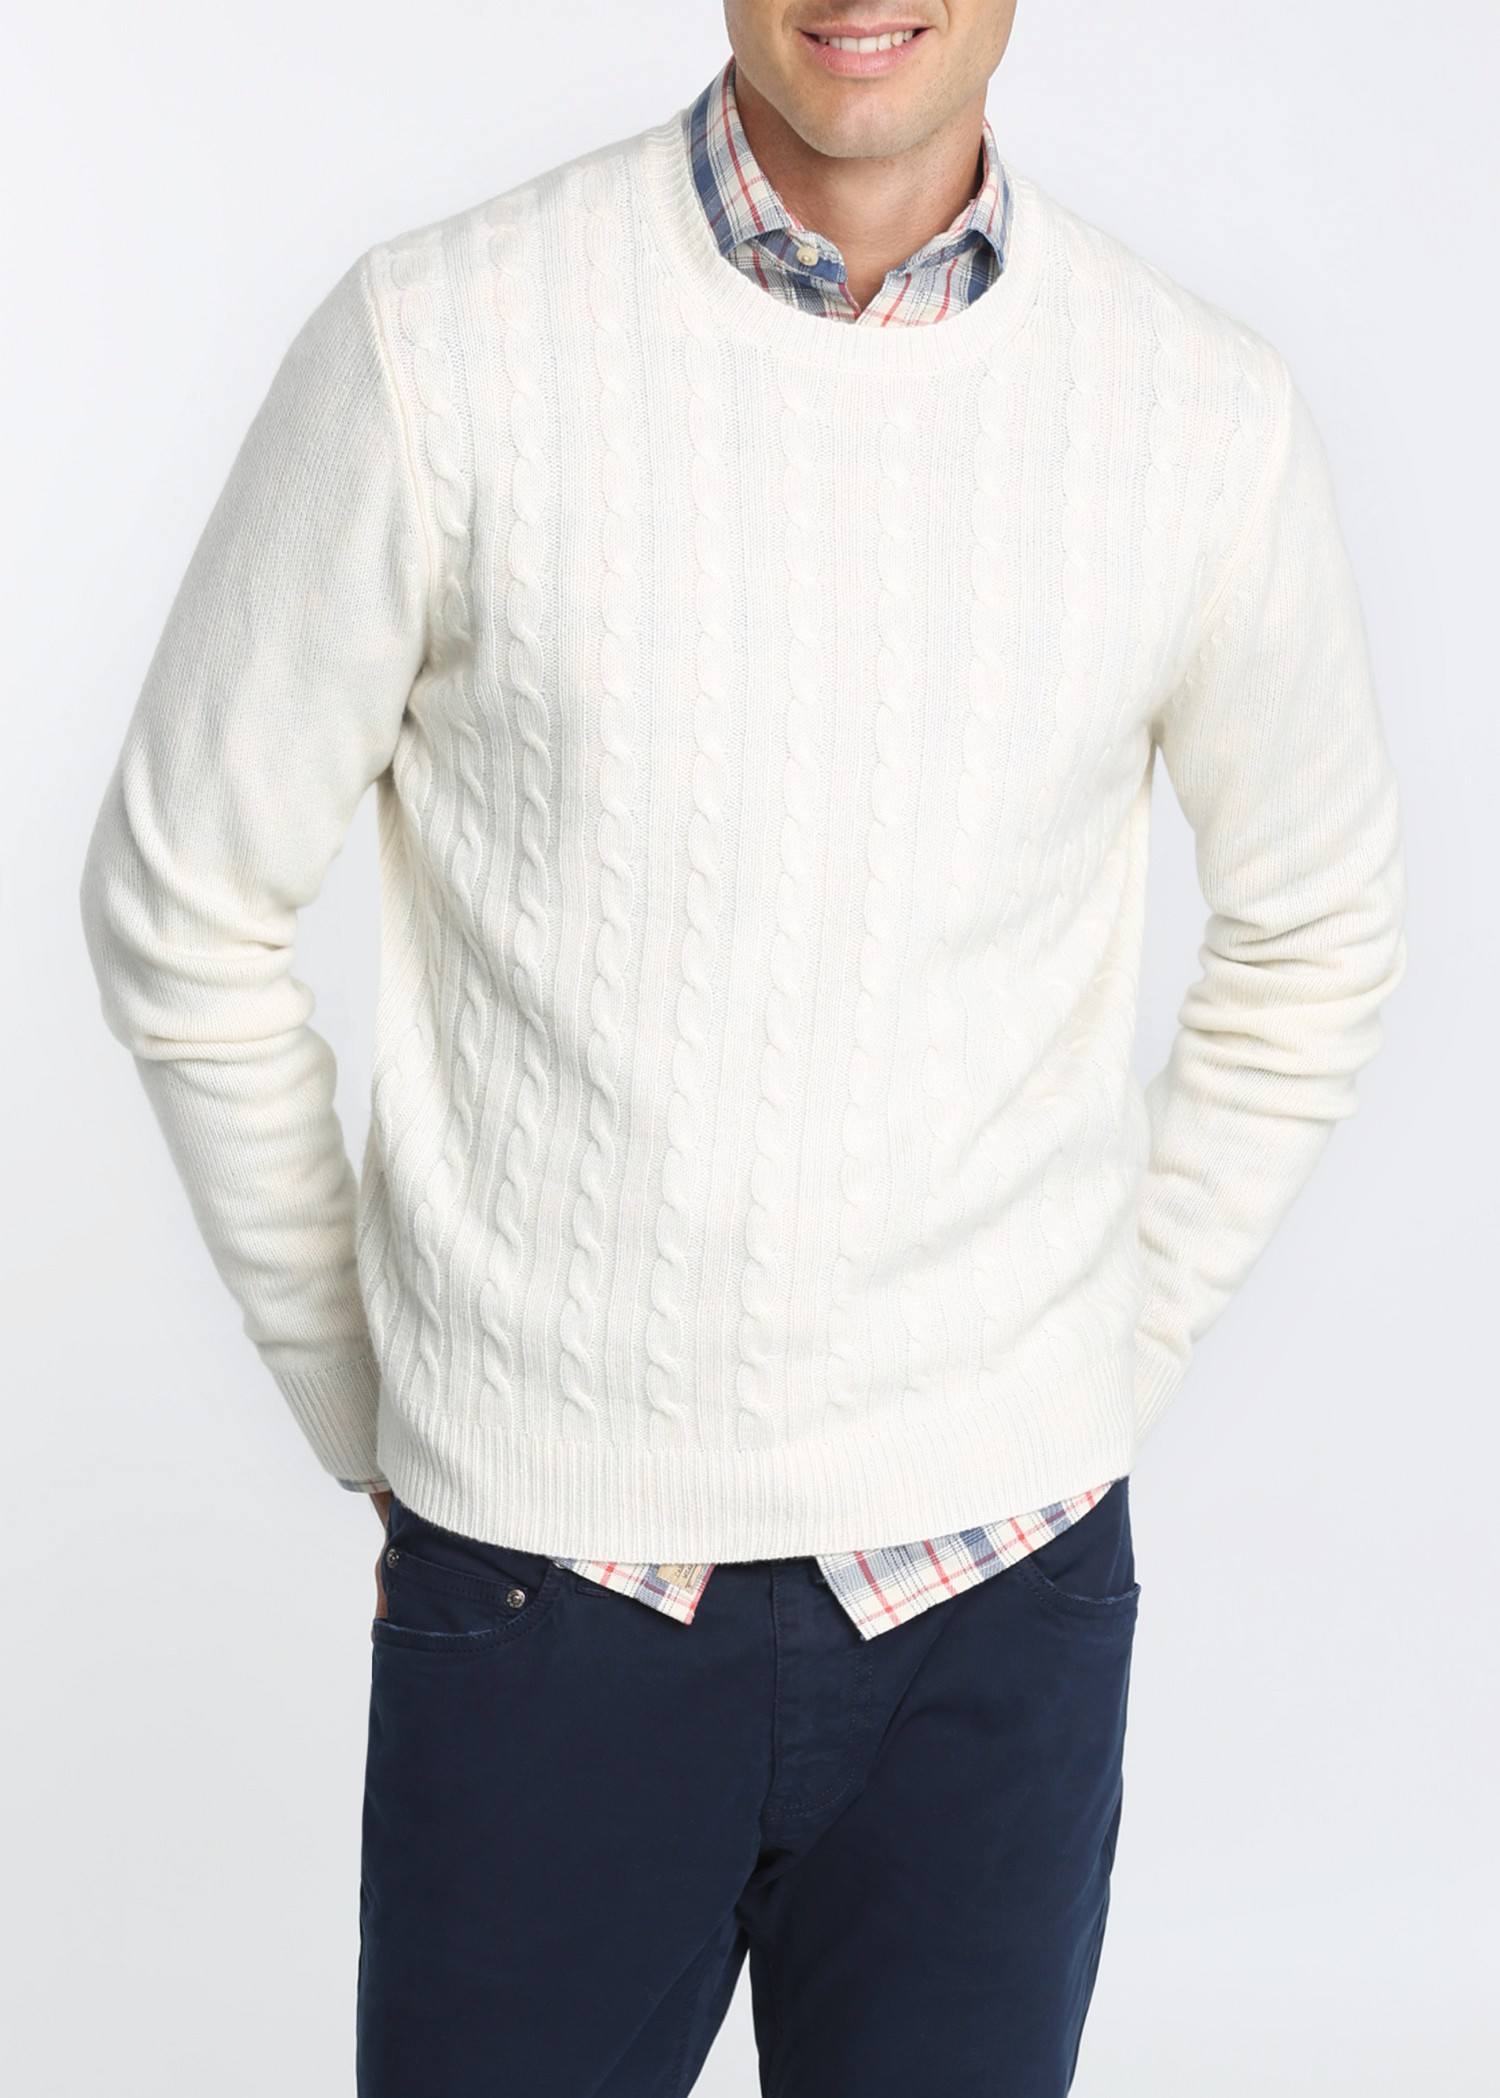 Mango Cableknit Cashmere Sweater in White for Men | Lyst